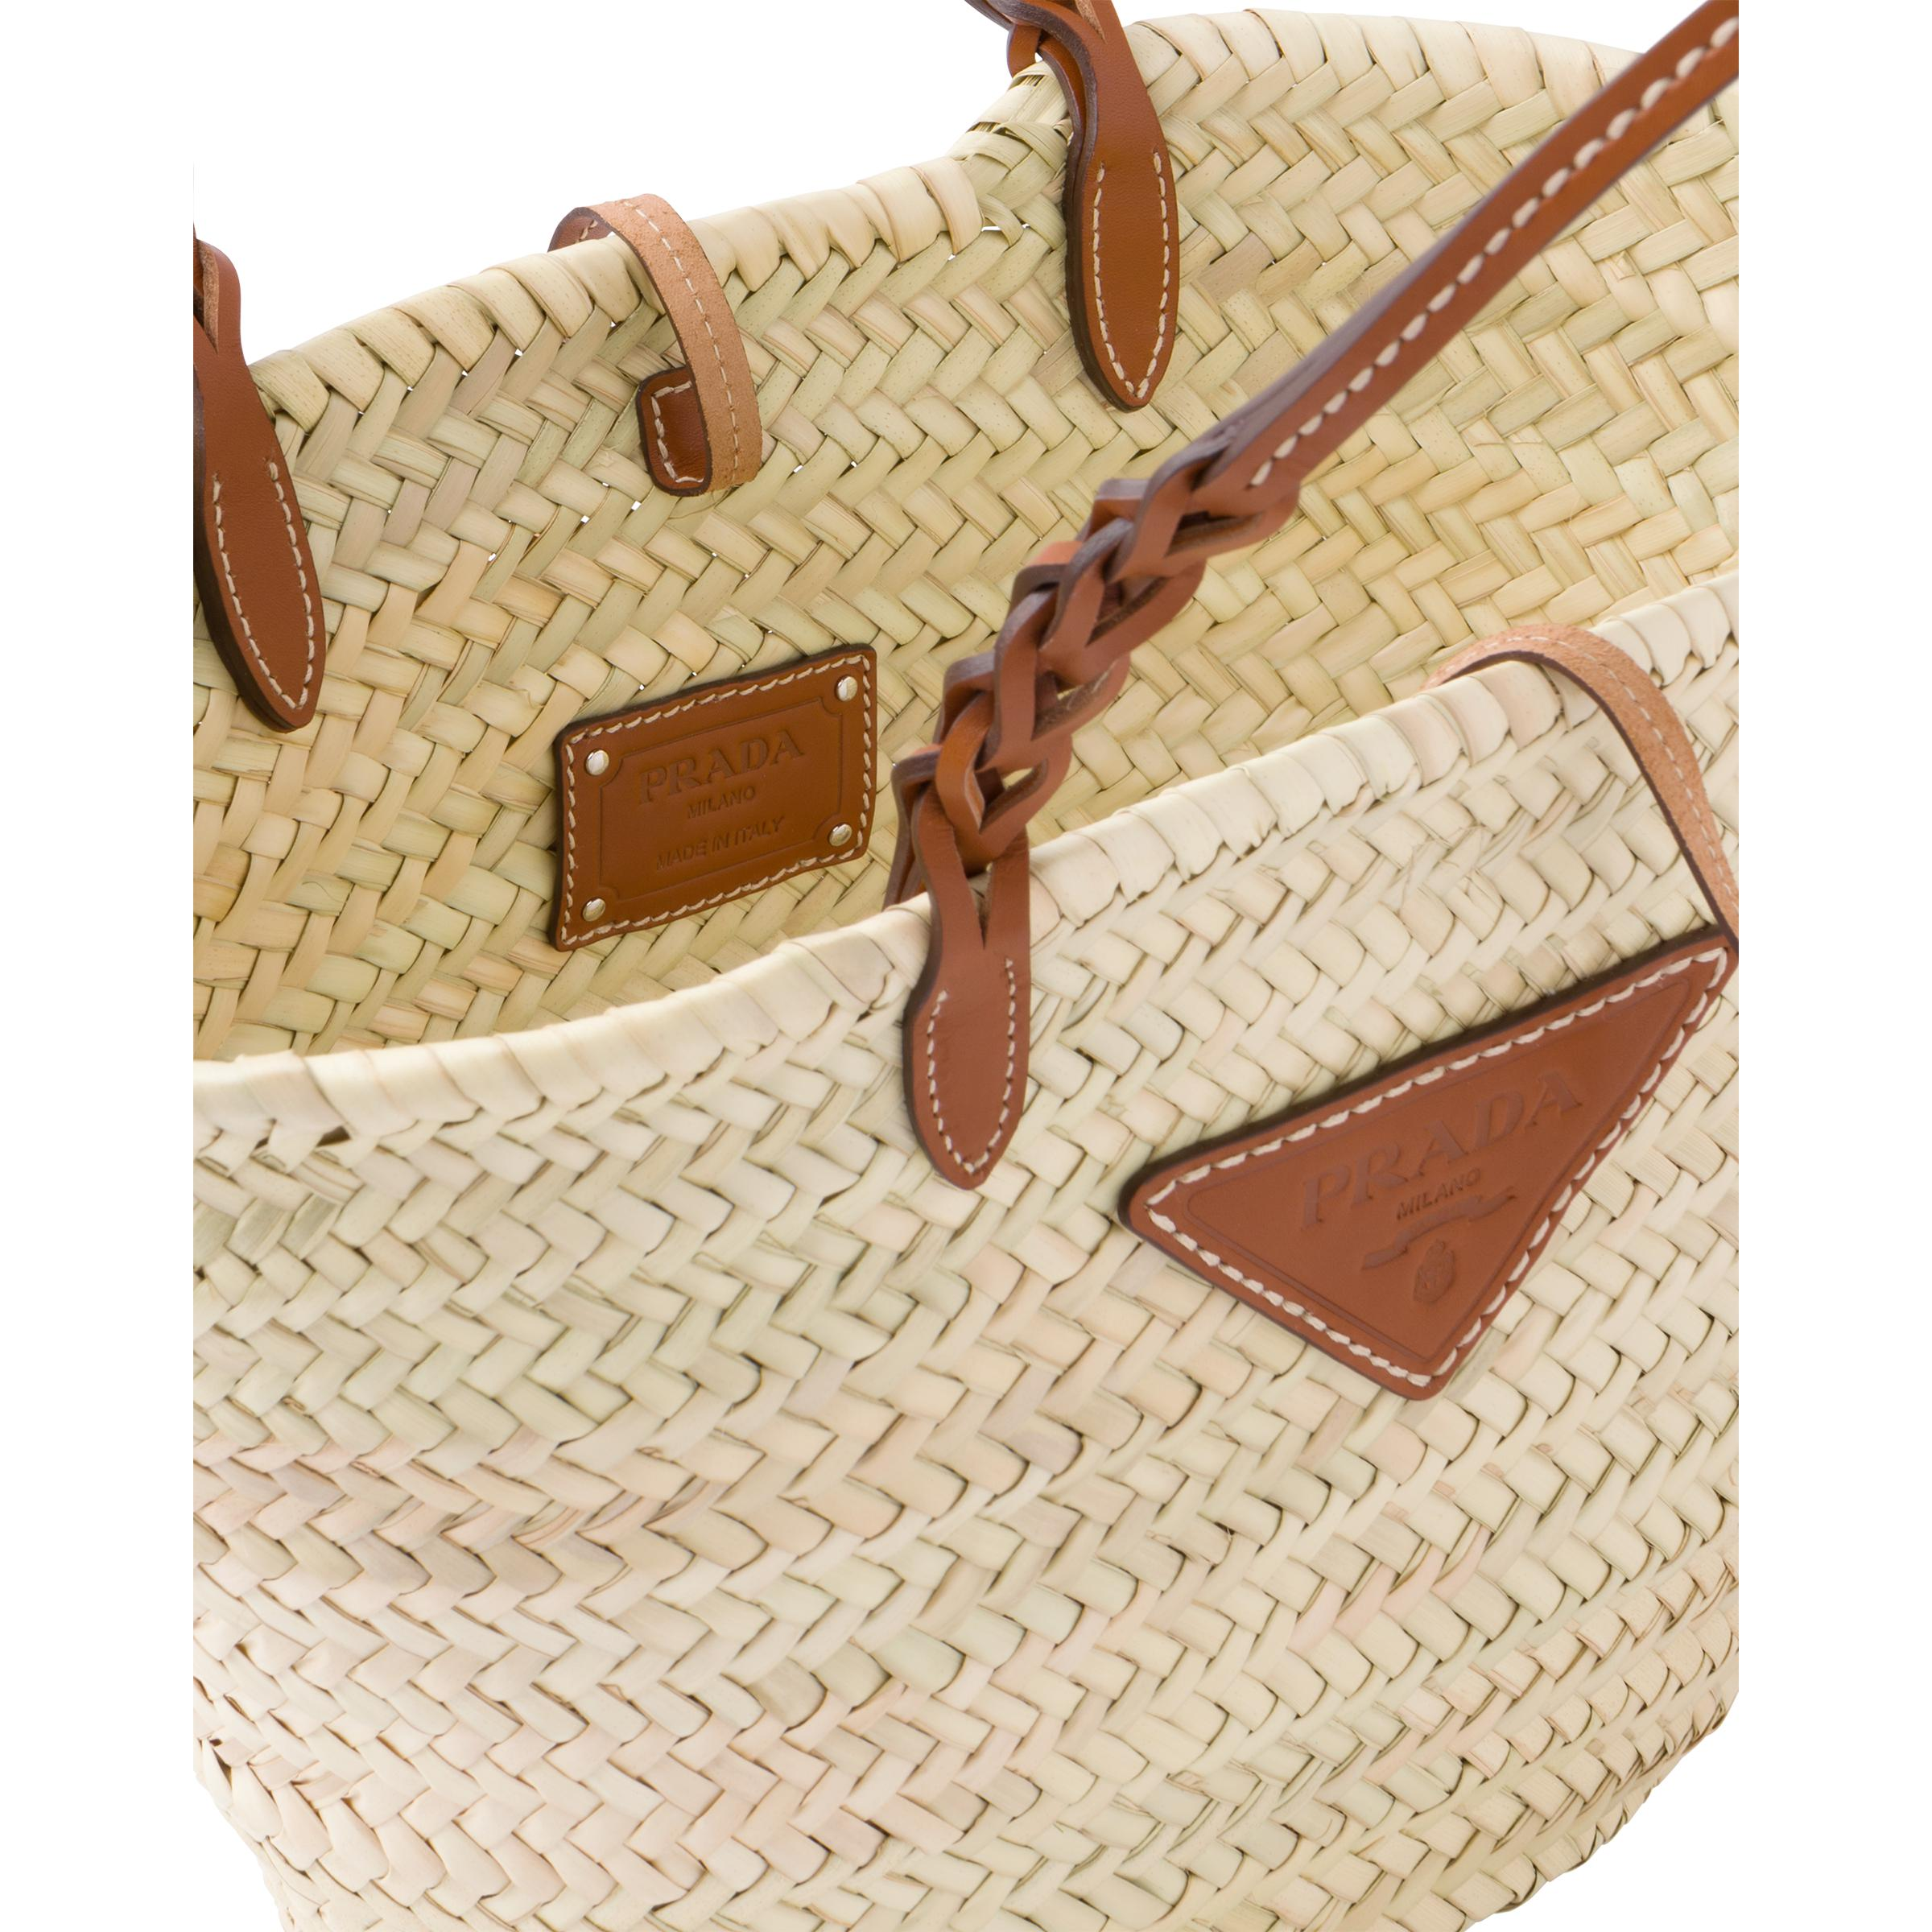 Woven Palm And Leather Tote Women Beige/cognac 4